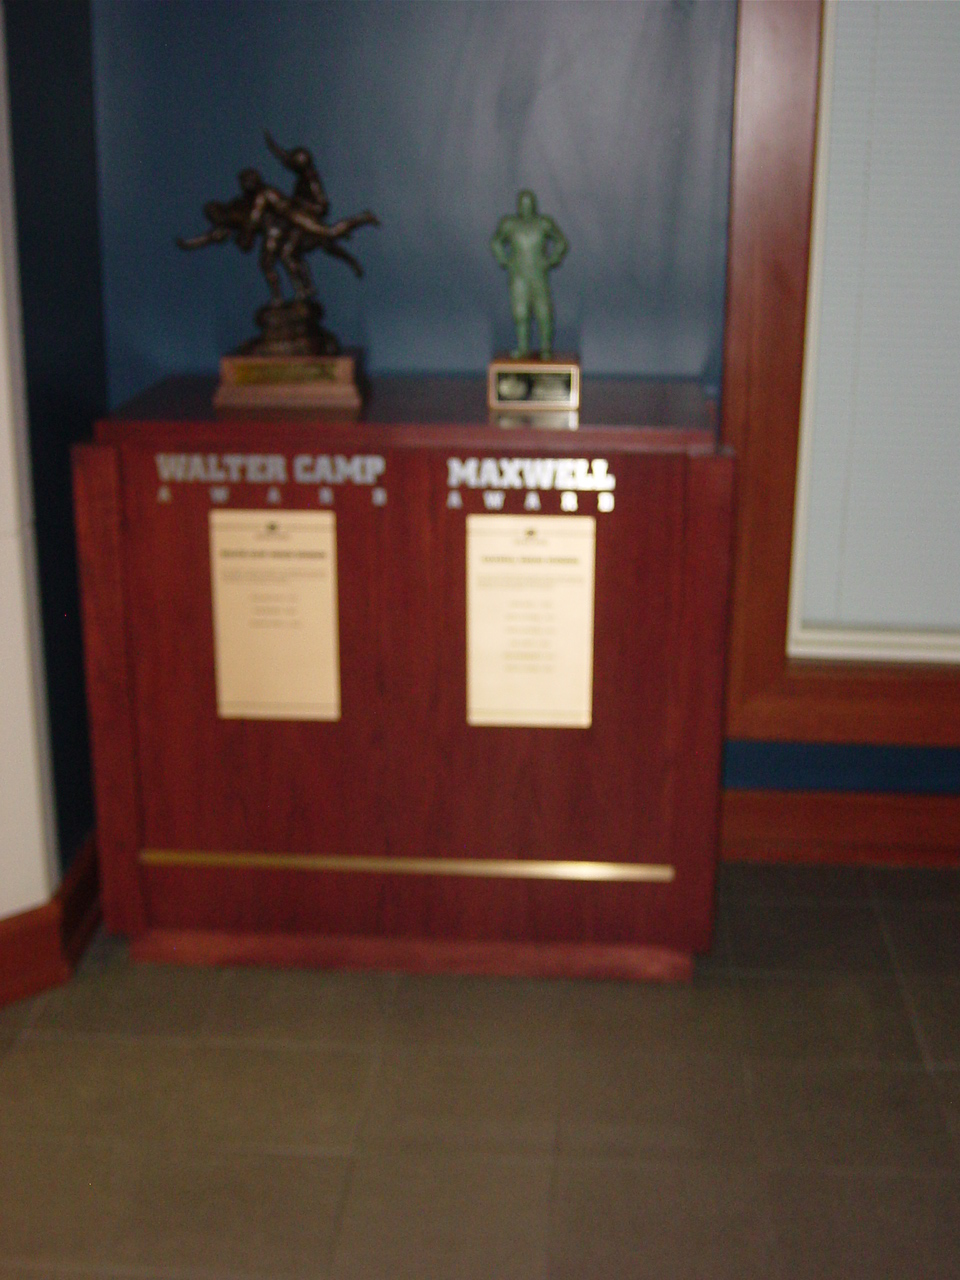 Walter Camp and Maxwell Trophies Notre Dame